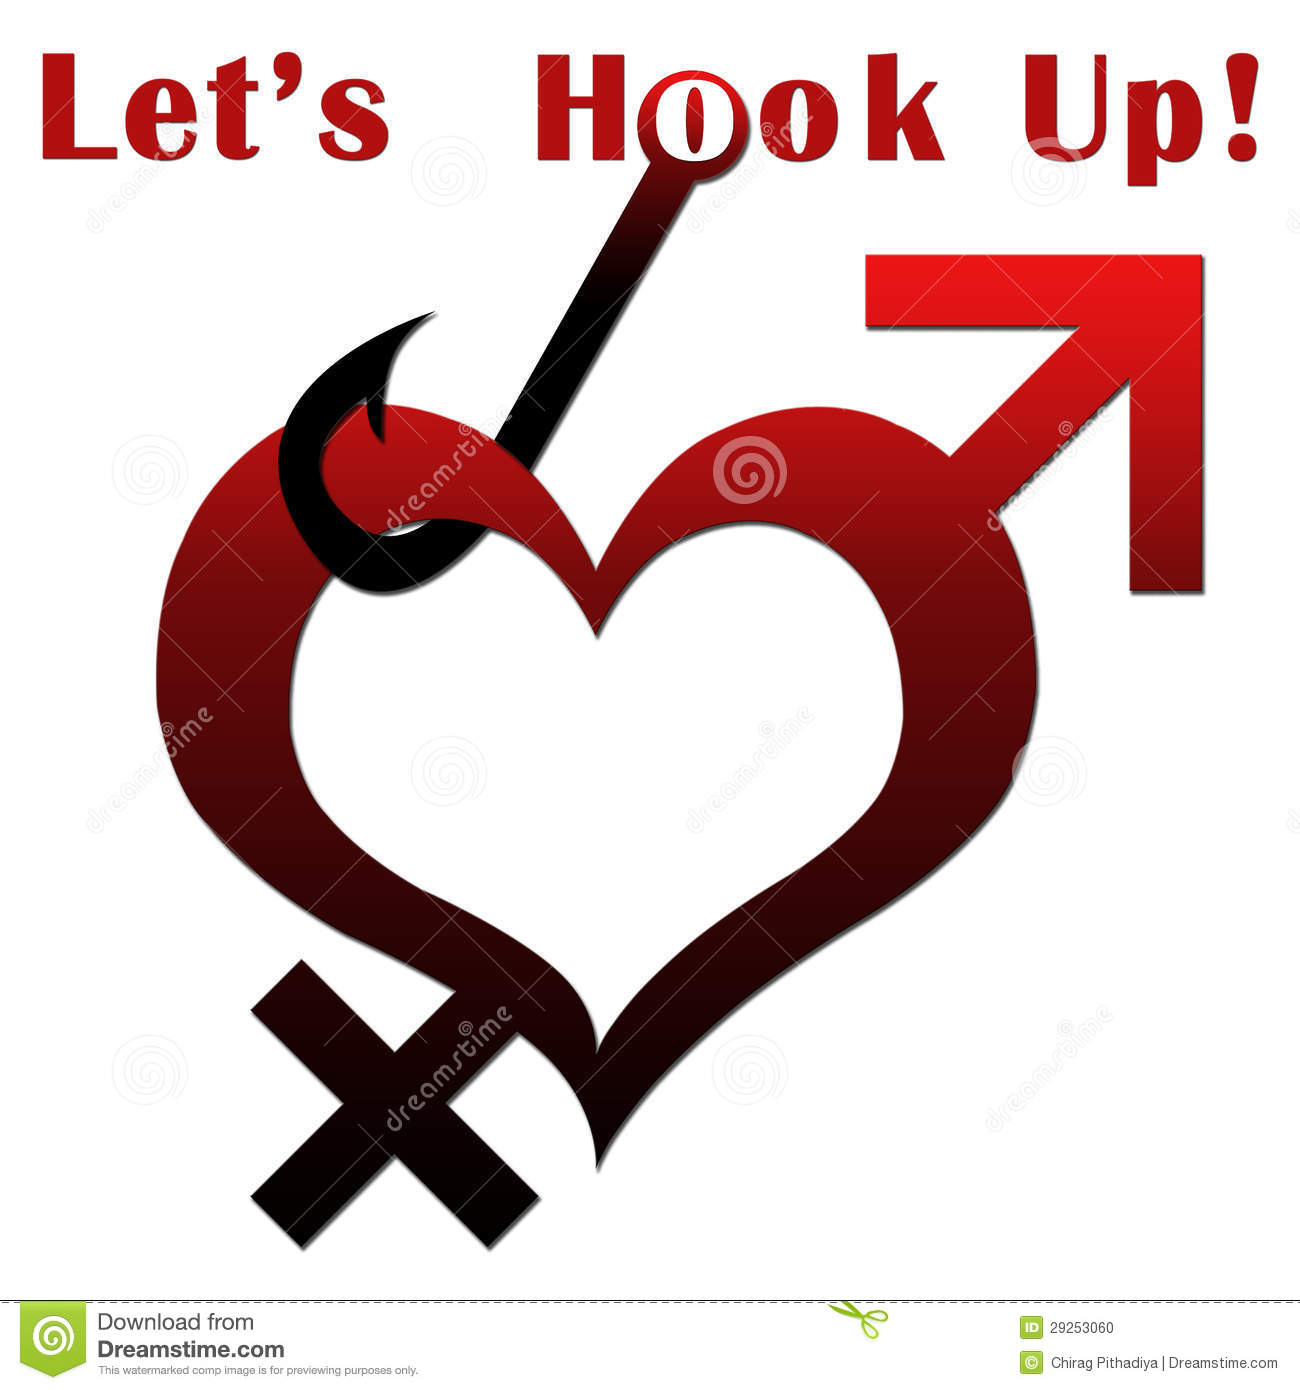 free just hook up account Download casualx: hook up & date hookup and enjoy it on your join for free now meet, date, chat and get down hoping to find people to just have a.